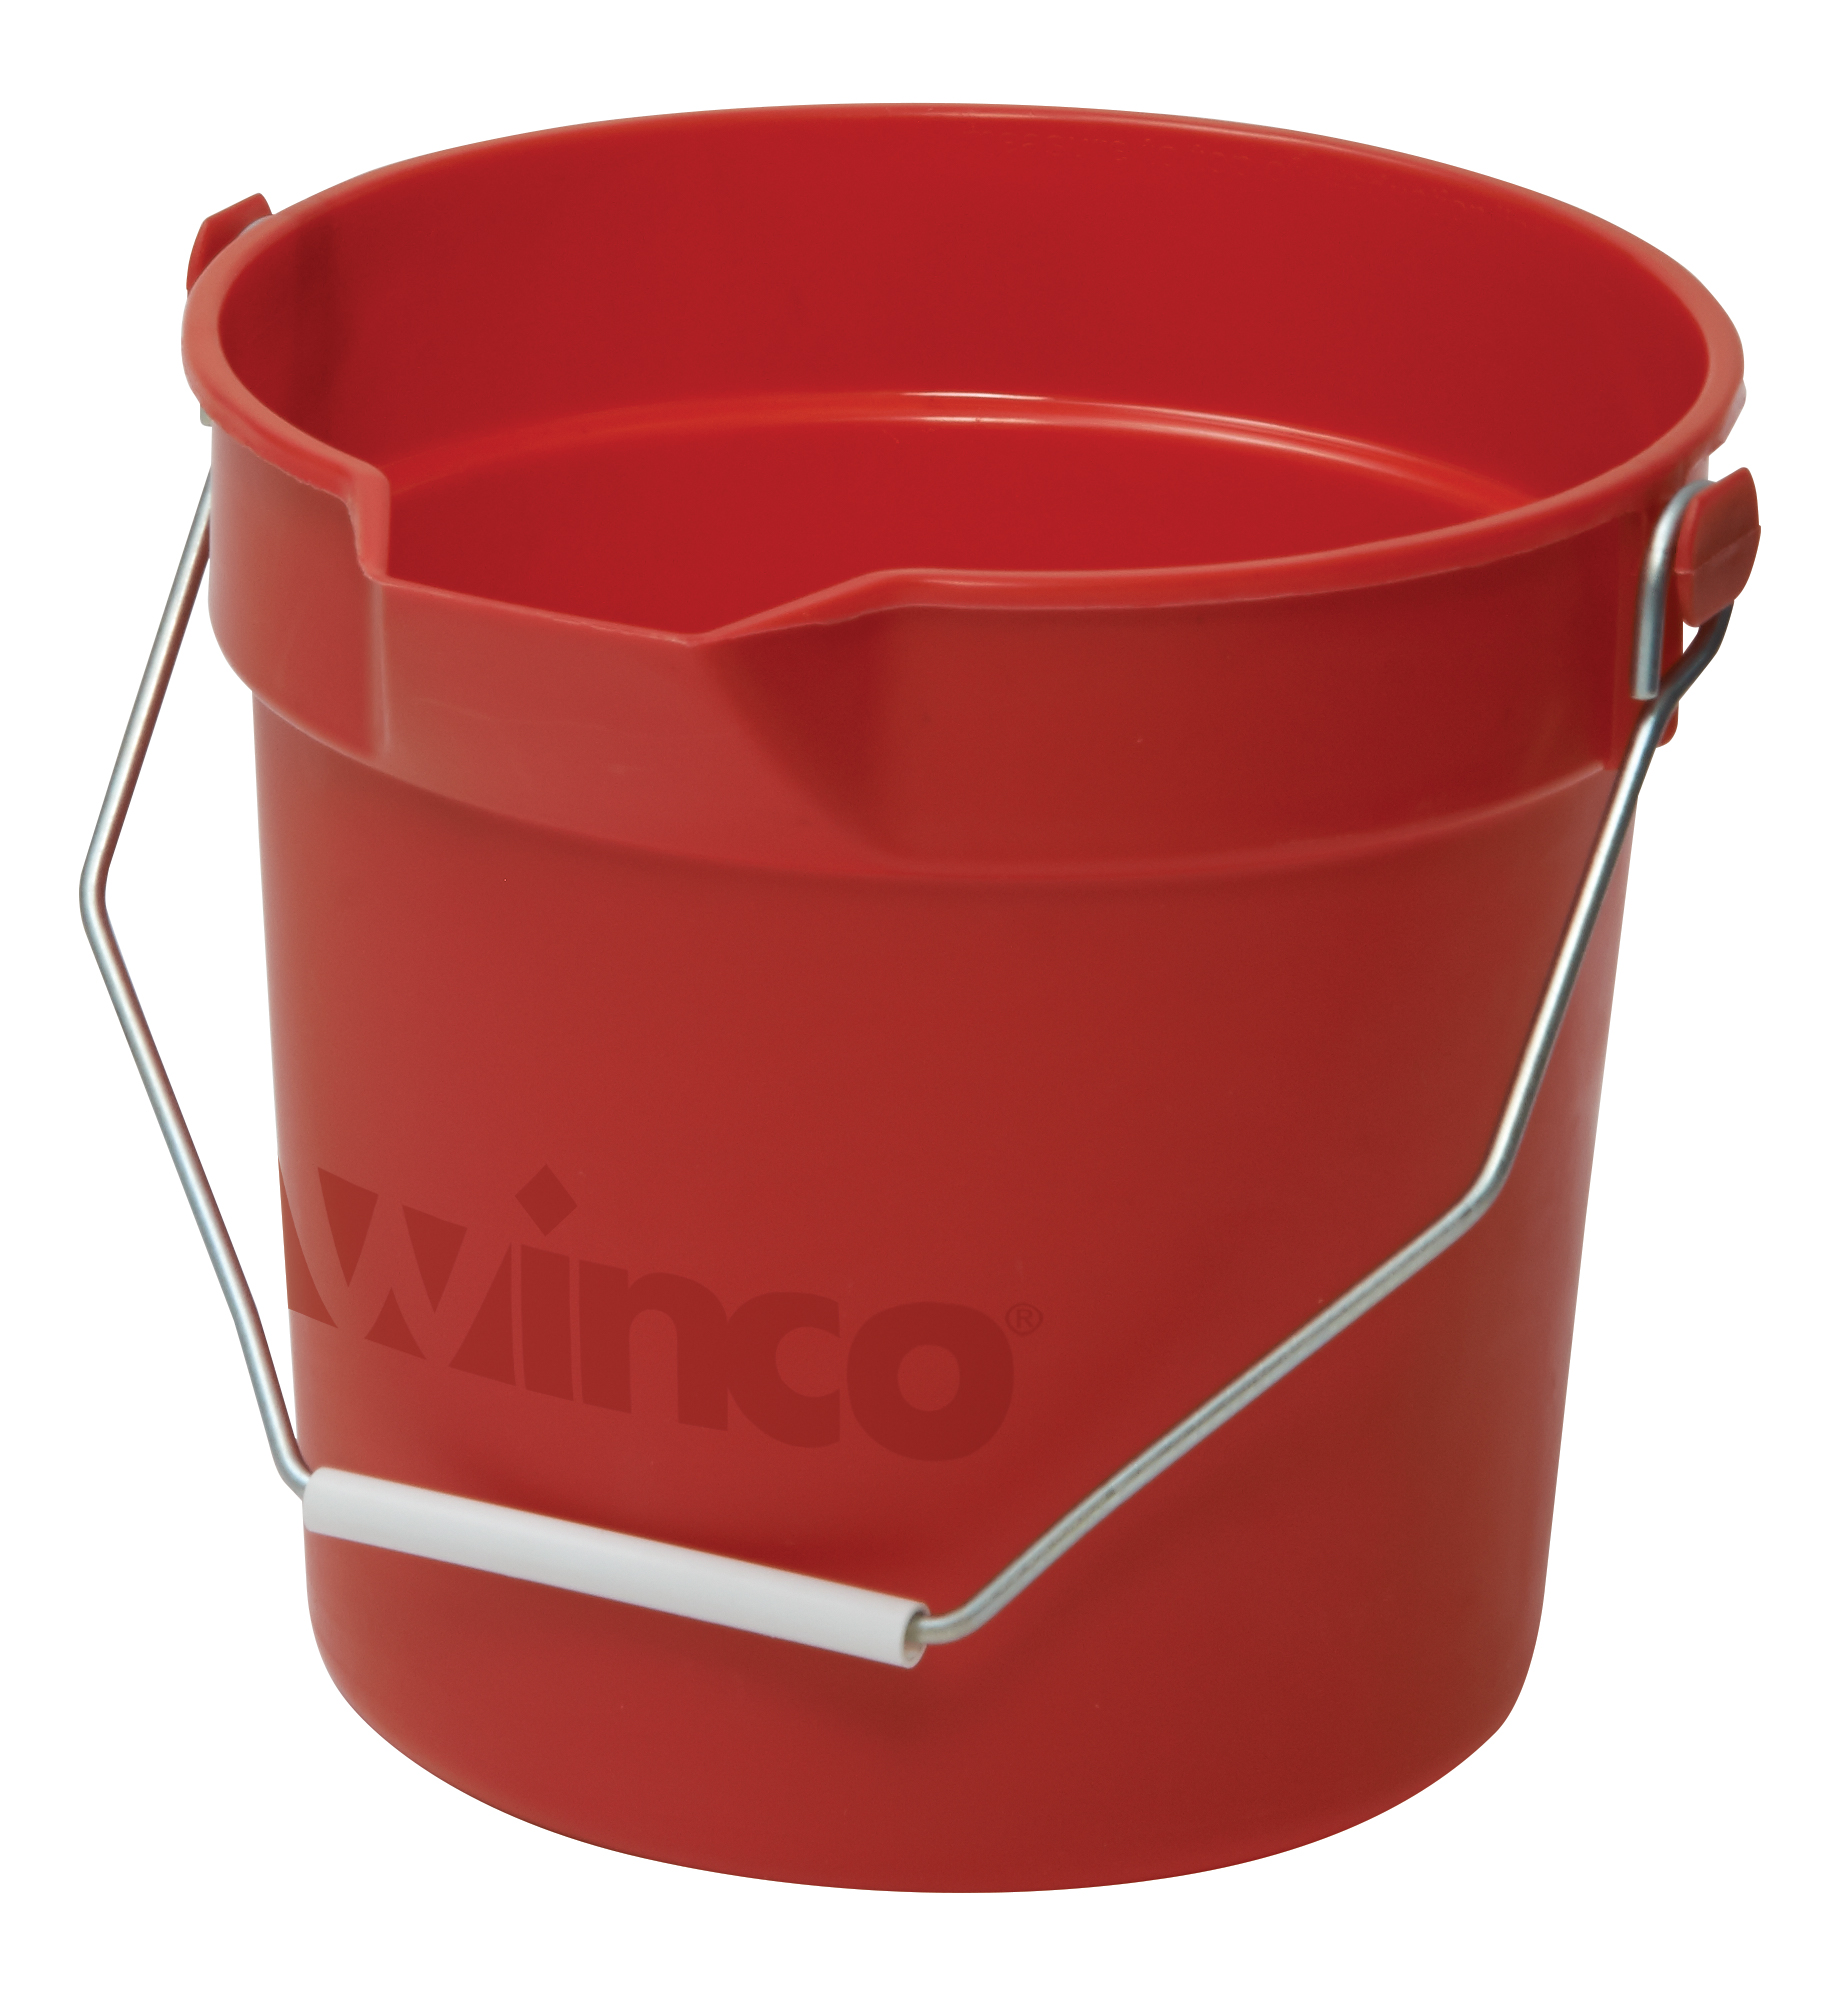 Winco UPP-10R janitorial accessories